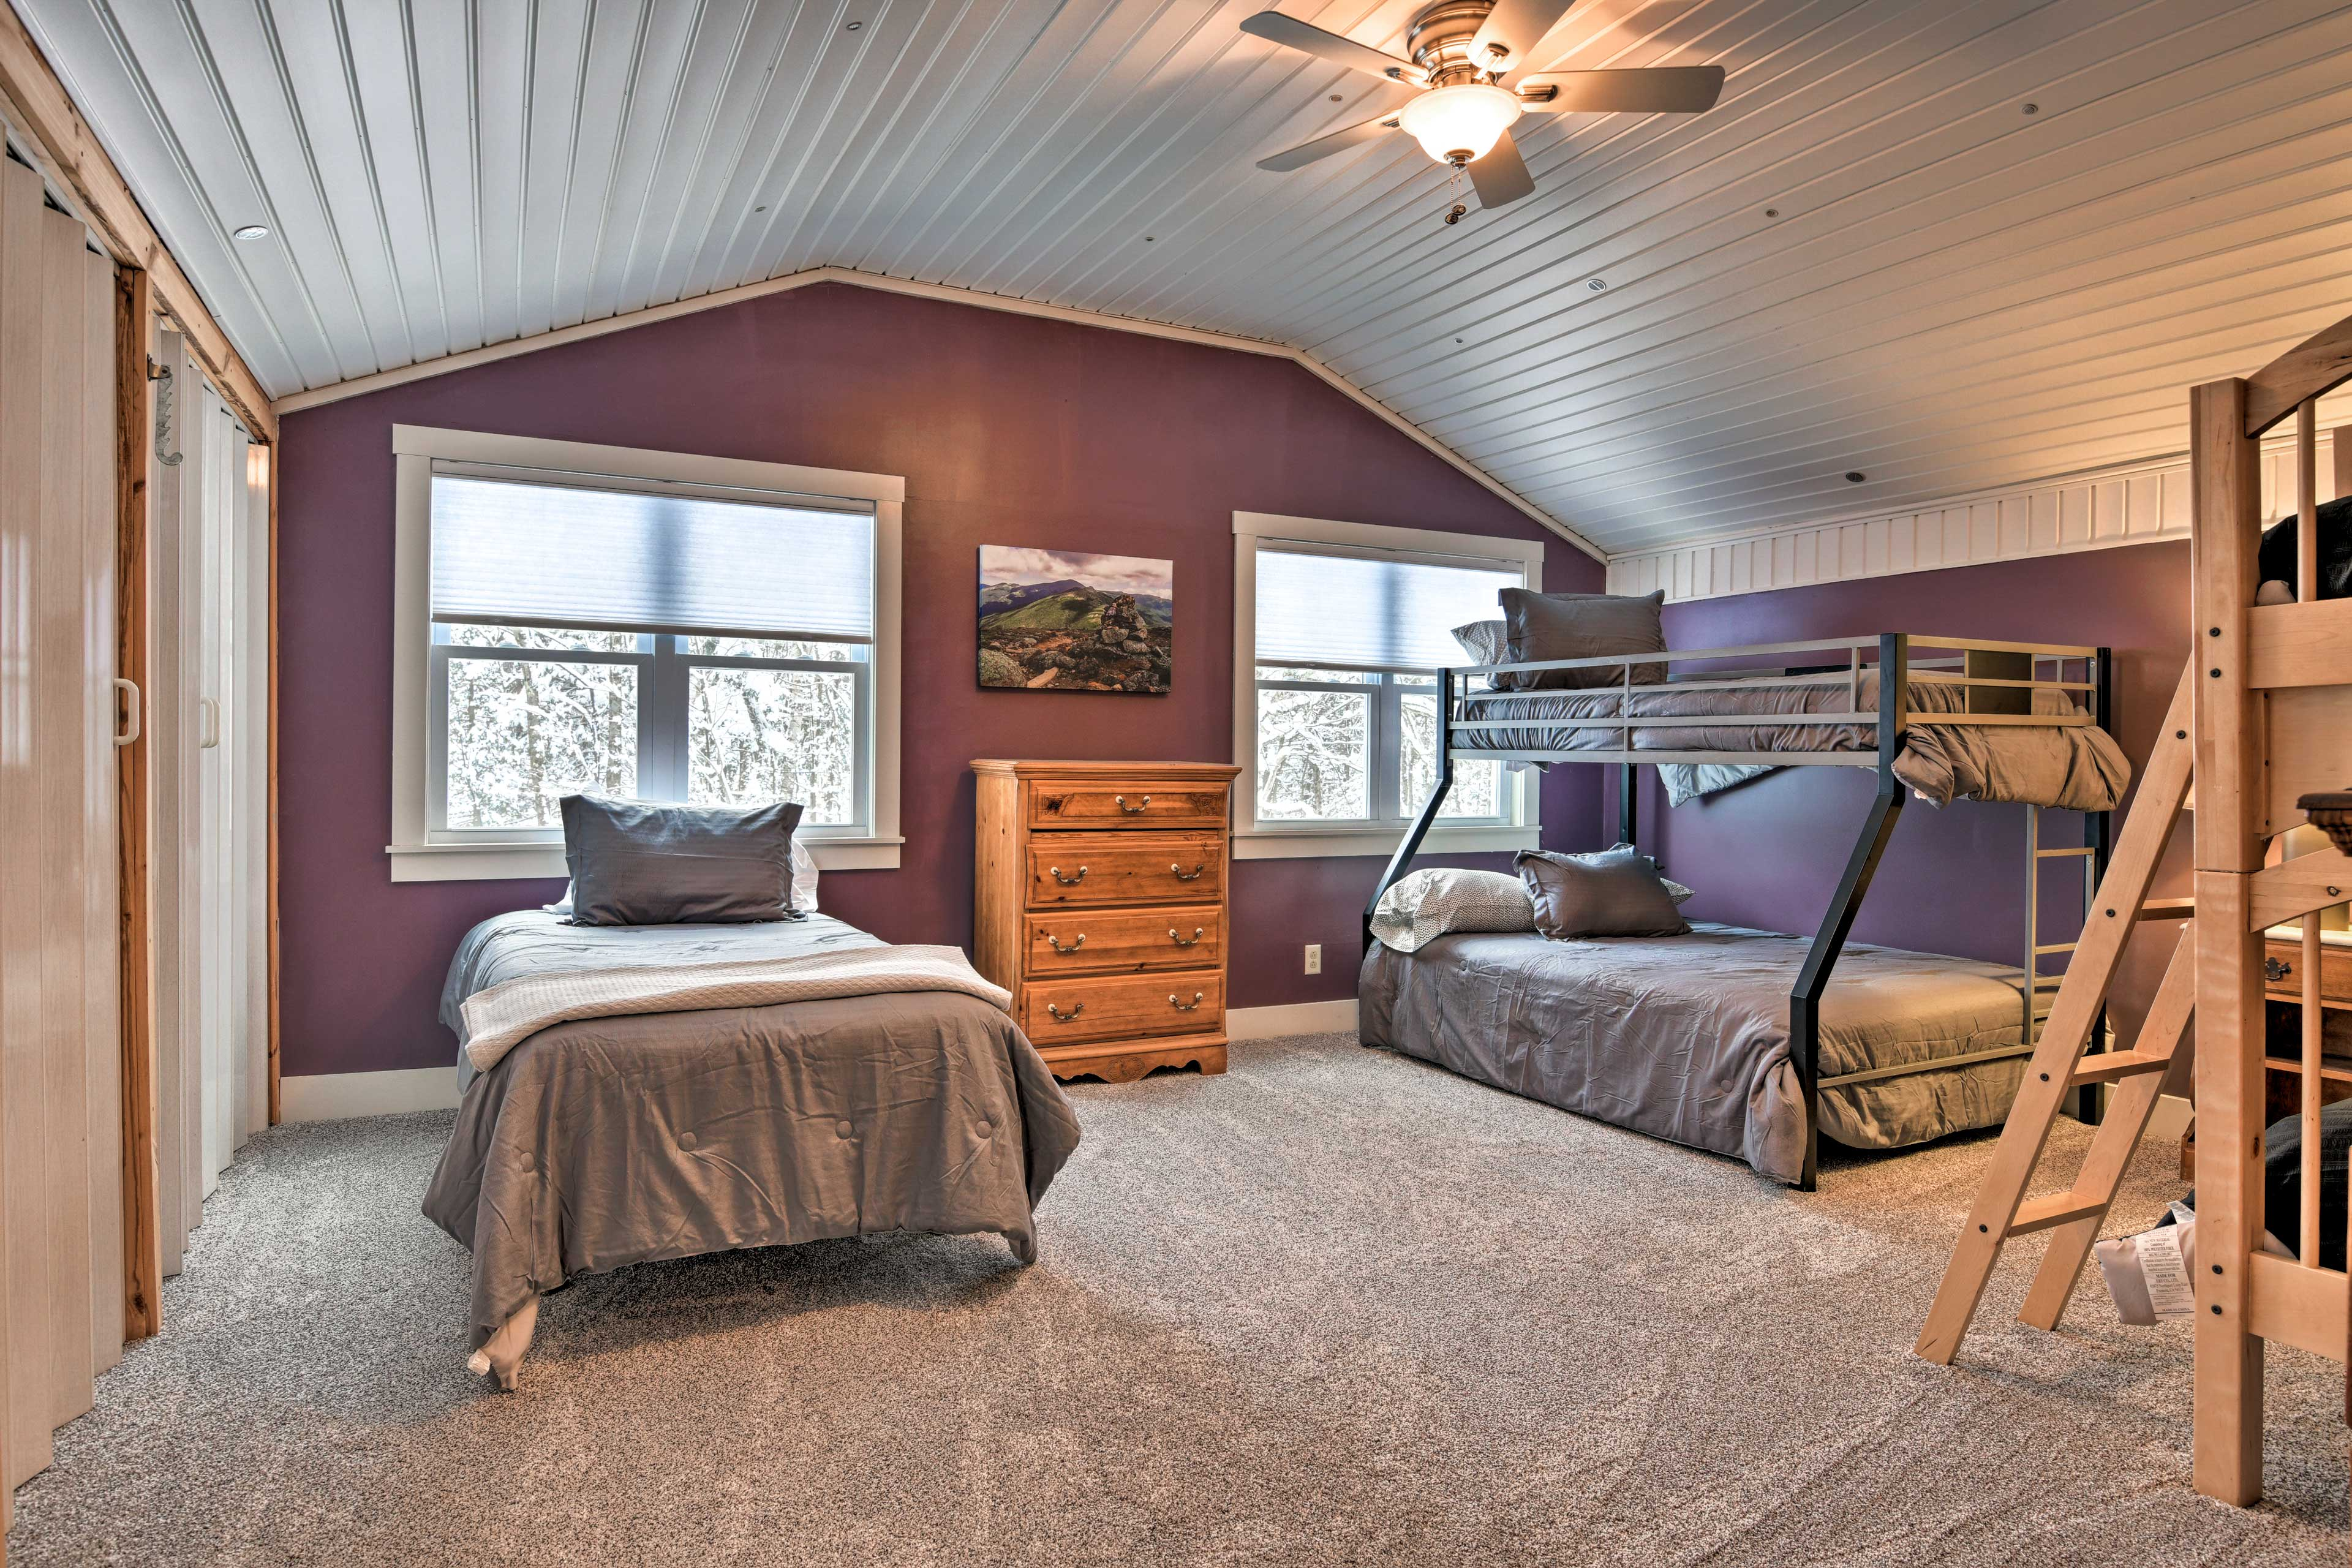 The third room has 2 sets of bunk beds and another twin bed.